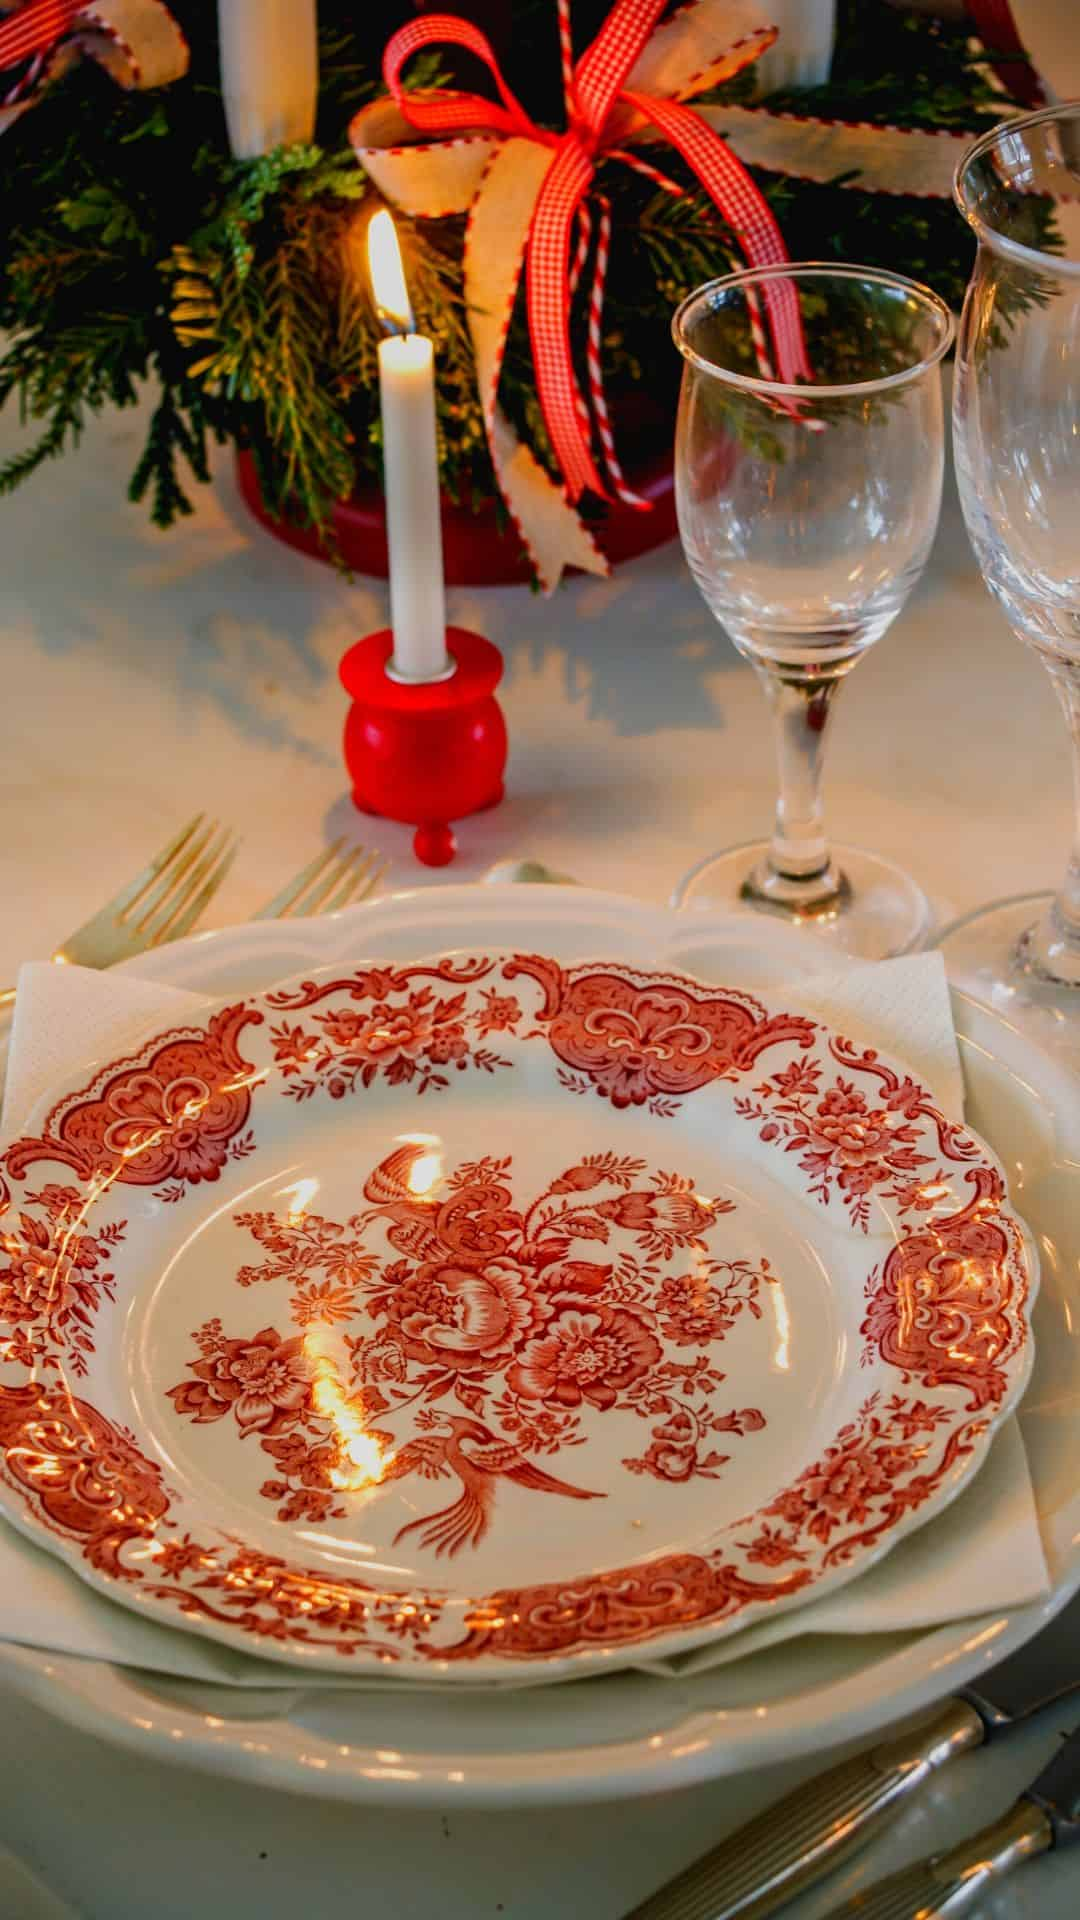 Cozy Christmas Backgrounds For iPhone Wallpaper Christmas Table Setting